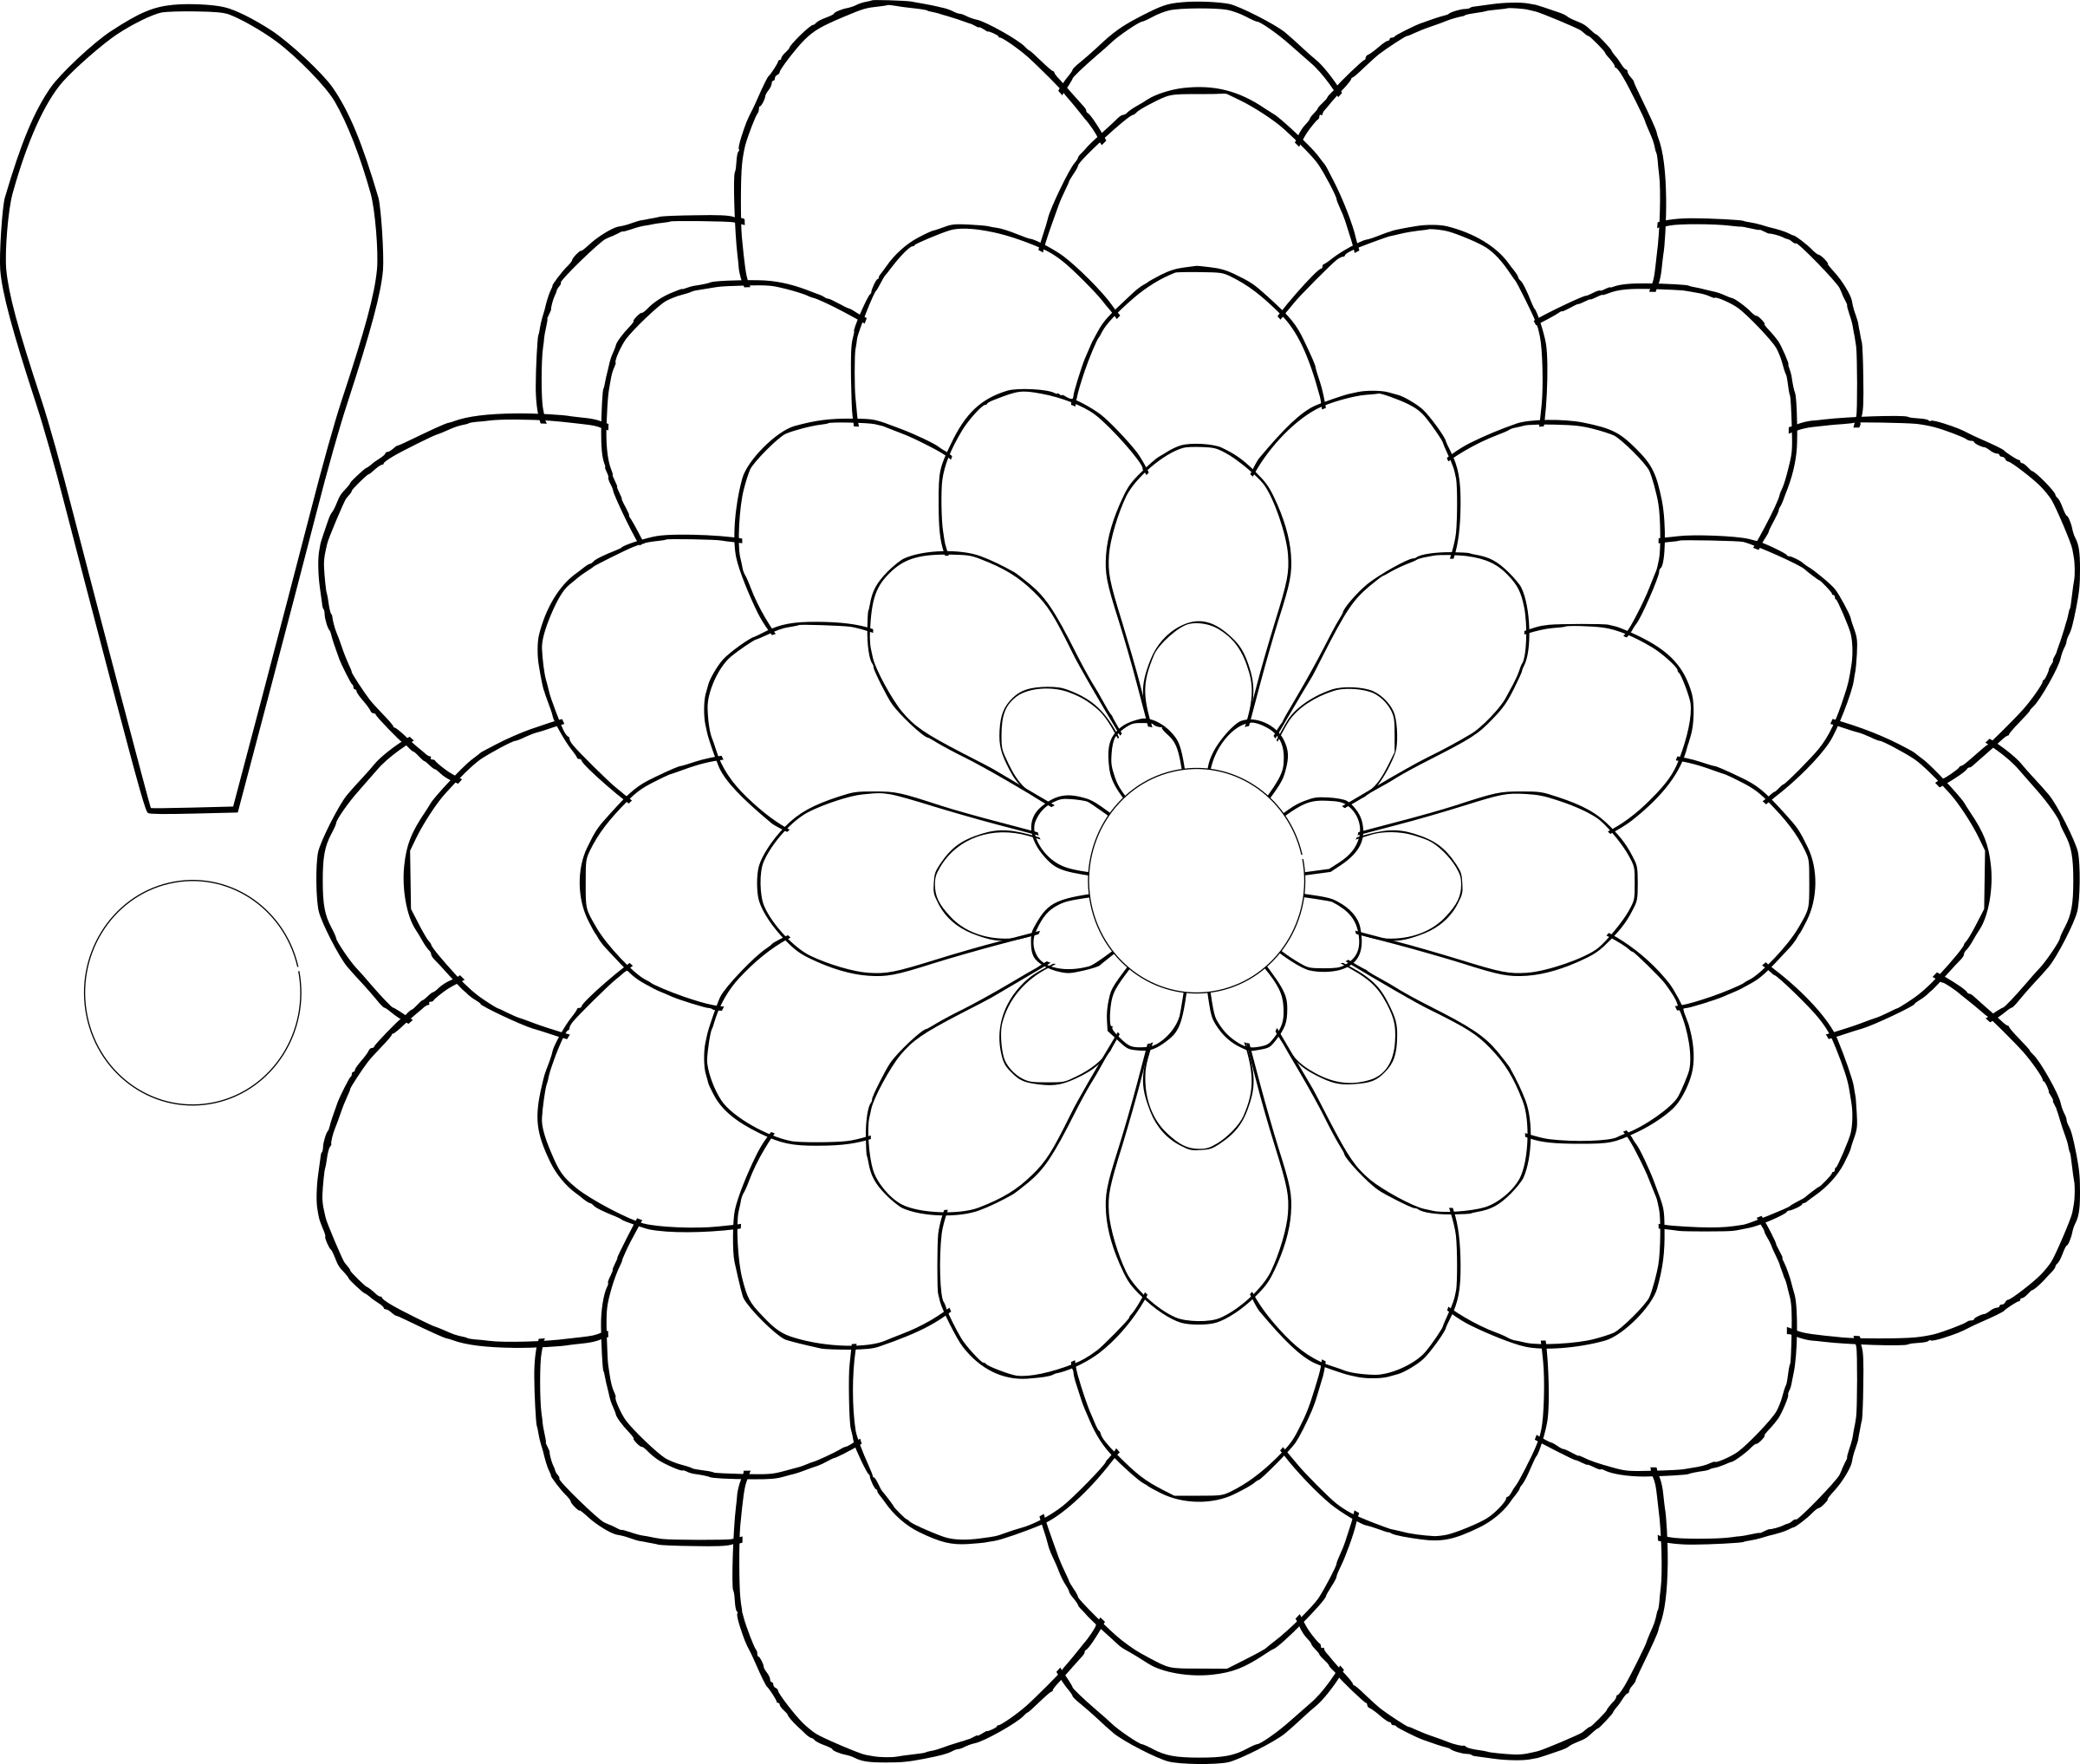 coloring pages flower petals - photo#19